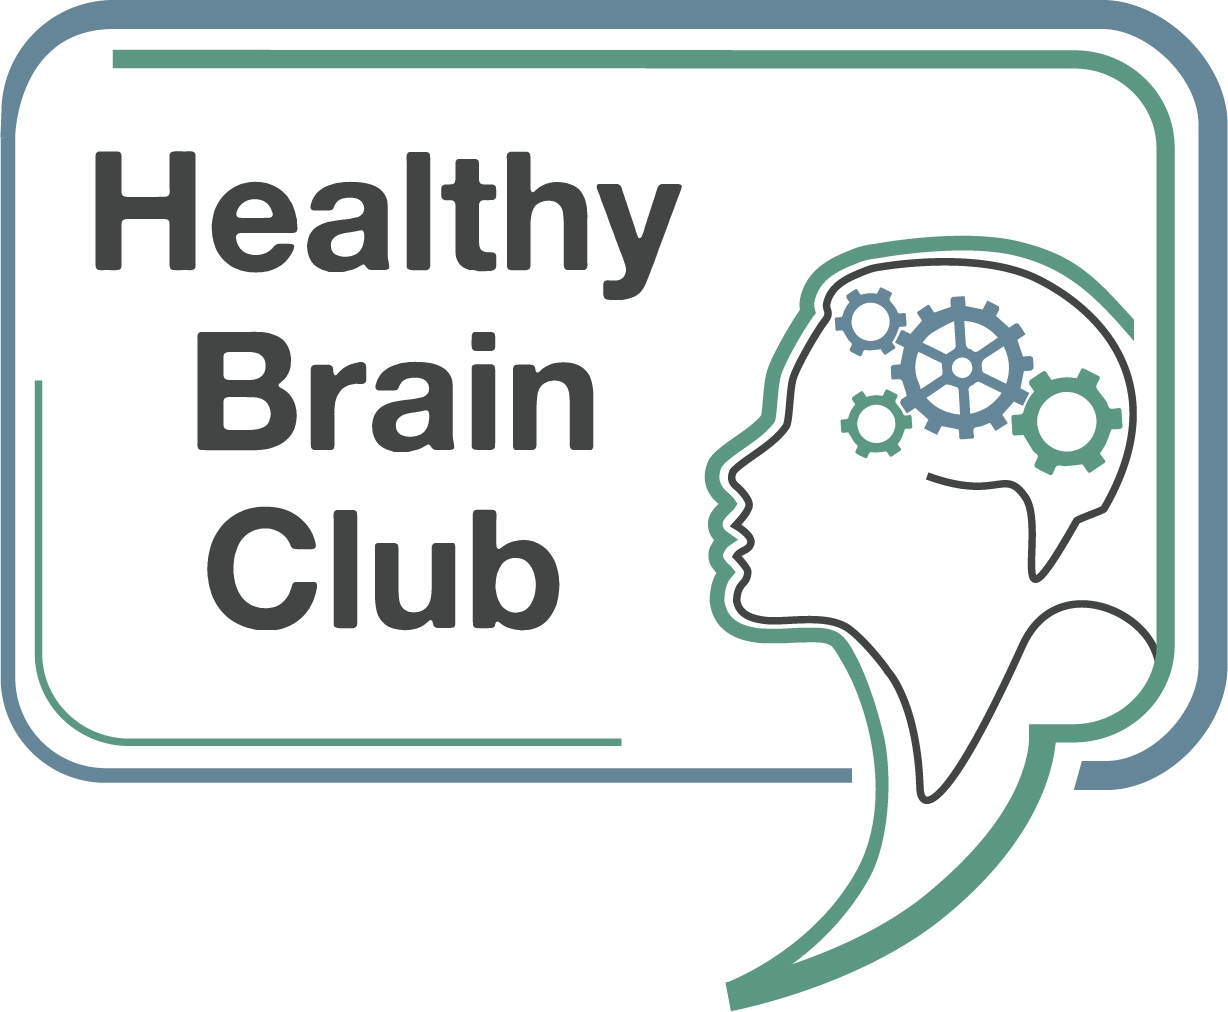 Health_brain_Logo_Colorized.jpg